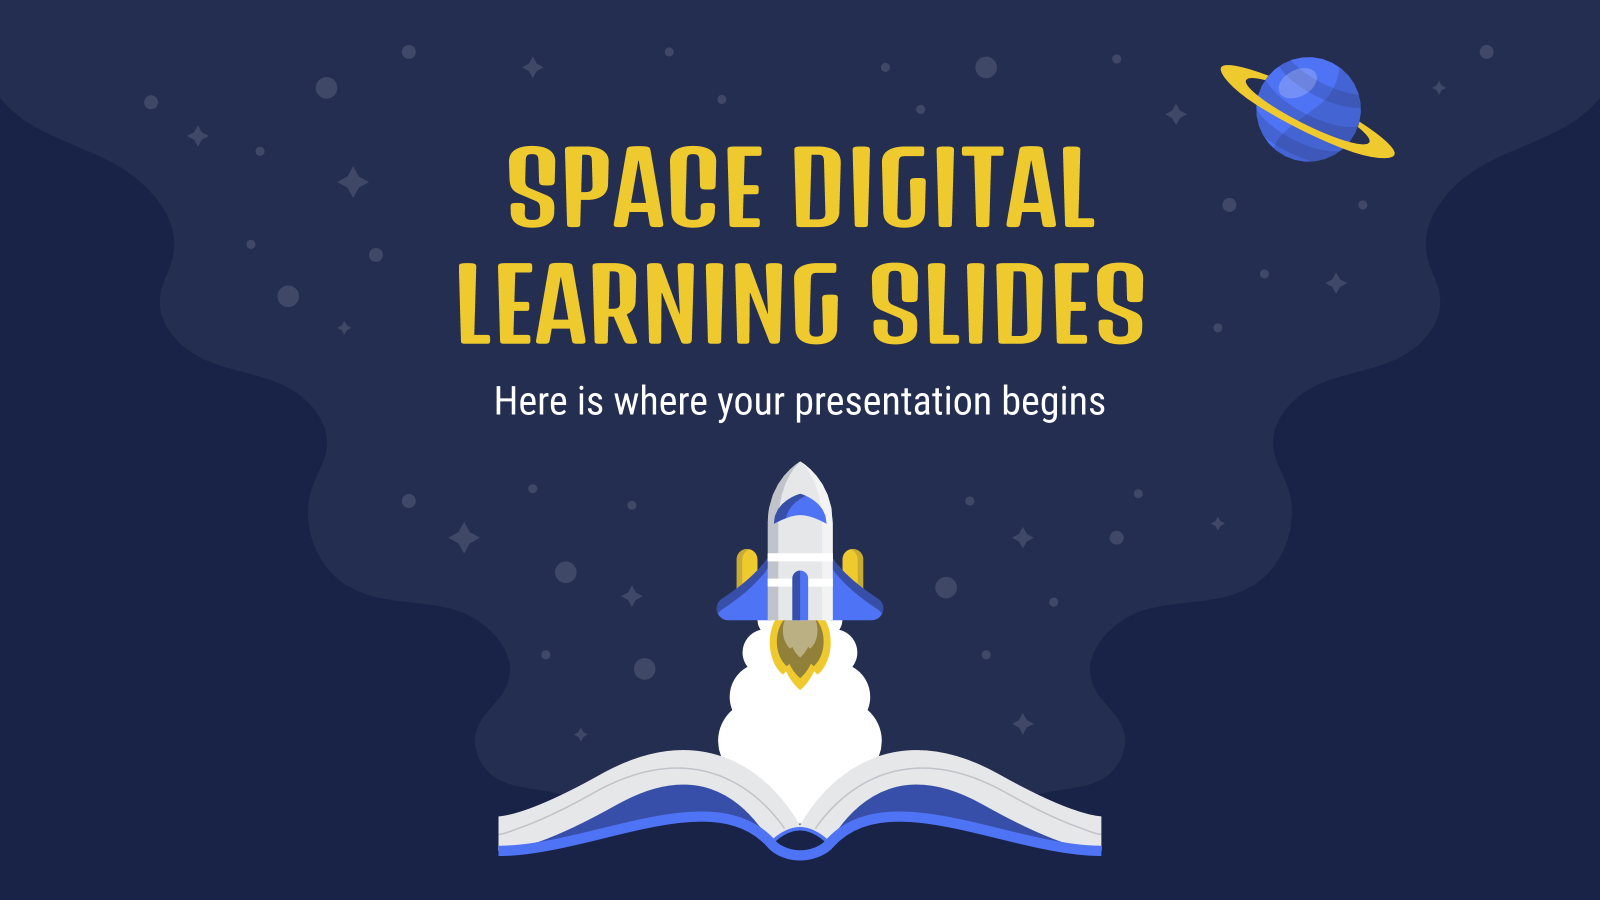 Space Digital Learning Slides presentation template